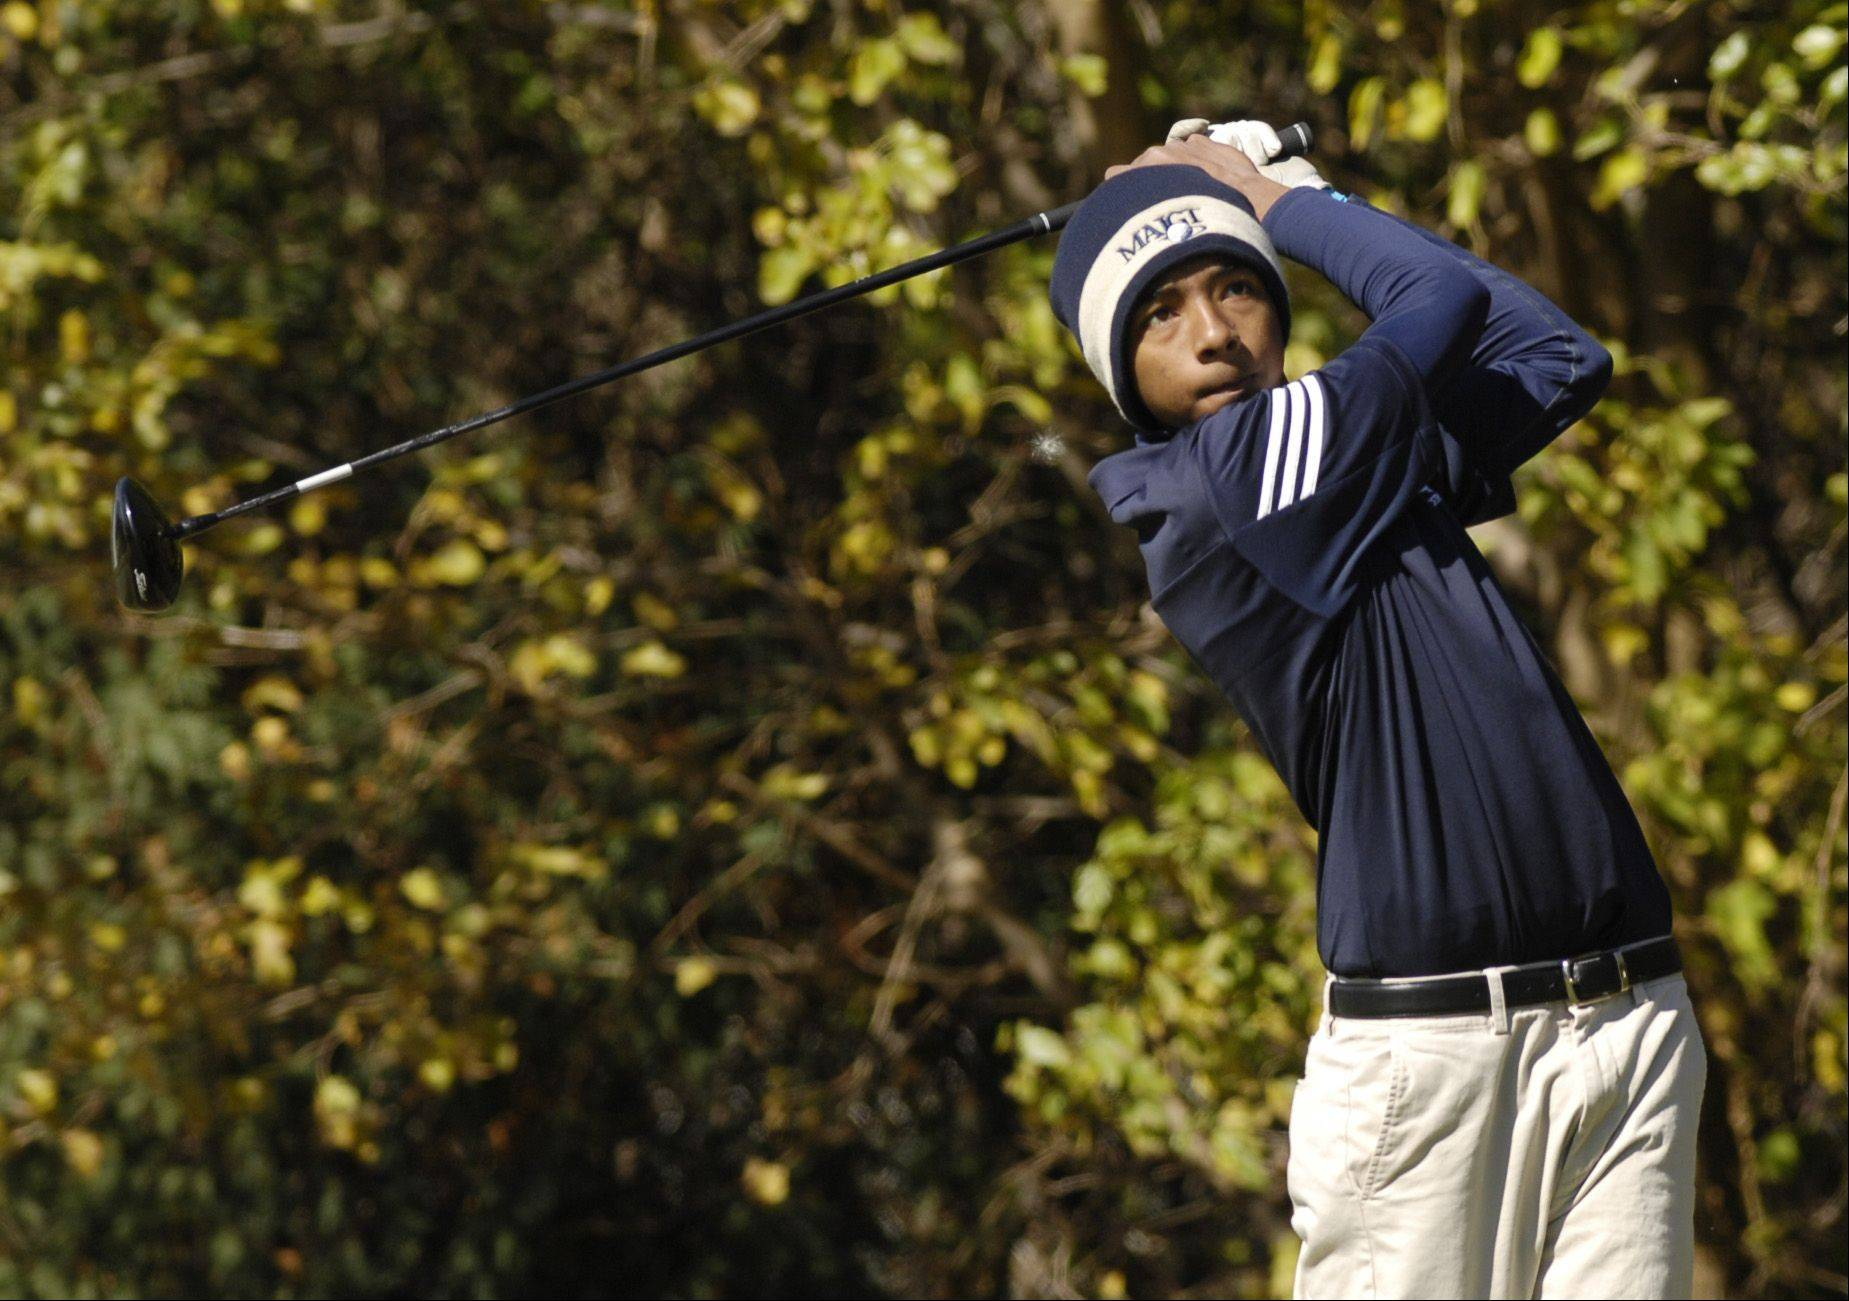 Daren Hooper of Lake Park tees off during the St. Charles East boys varsity golf sectional at St. Andrews Golf Club in West Chicago, Monday.